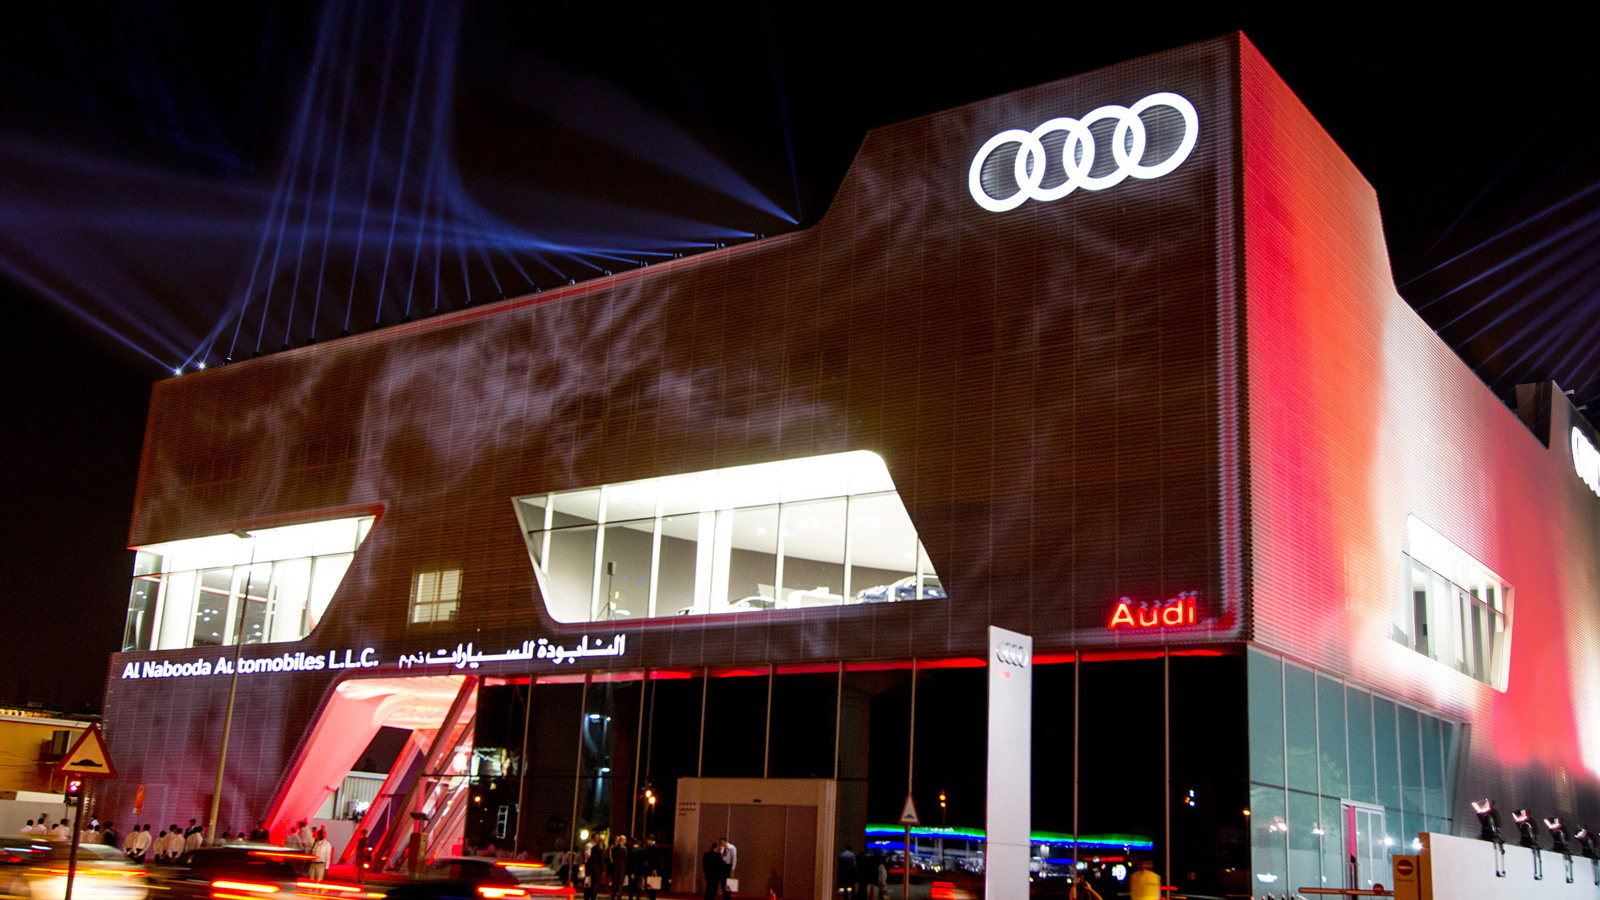 Opening of the Dubai Audi terminal